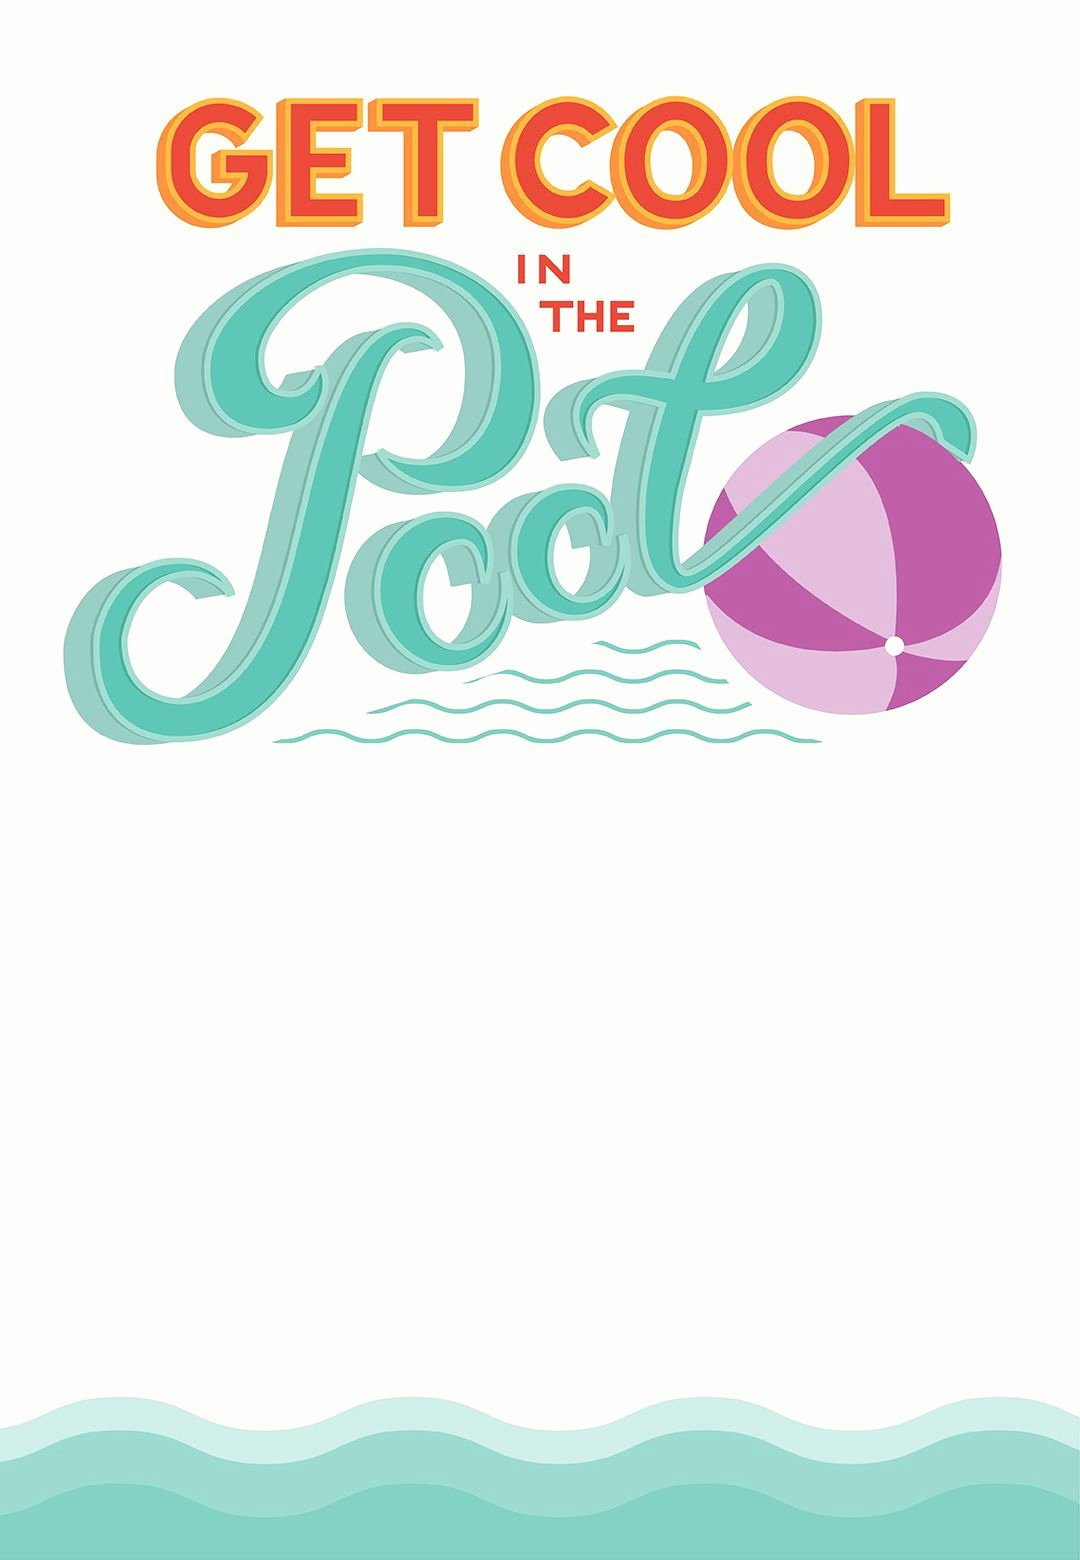 Pool Party Invitation Template Fresh Pool Party Free Printable Party Invitation Template